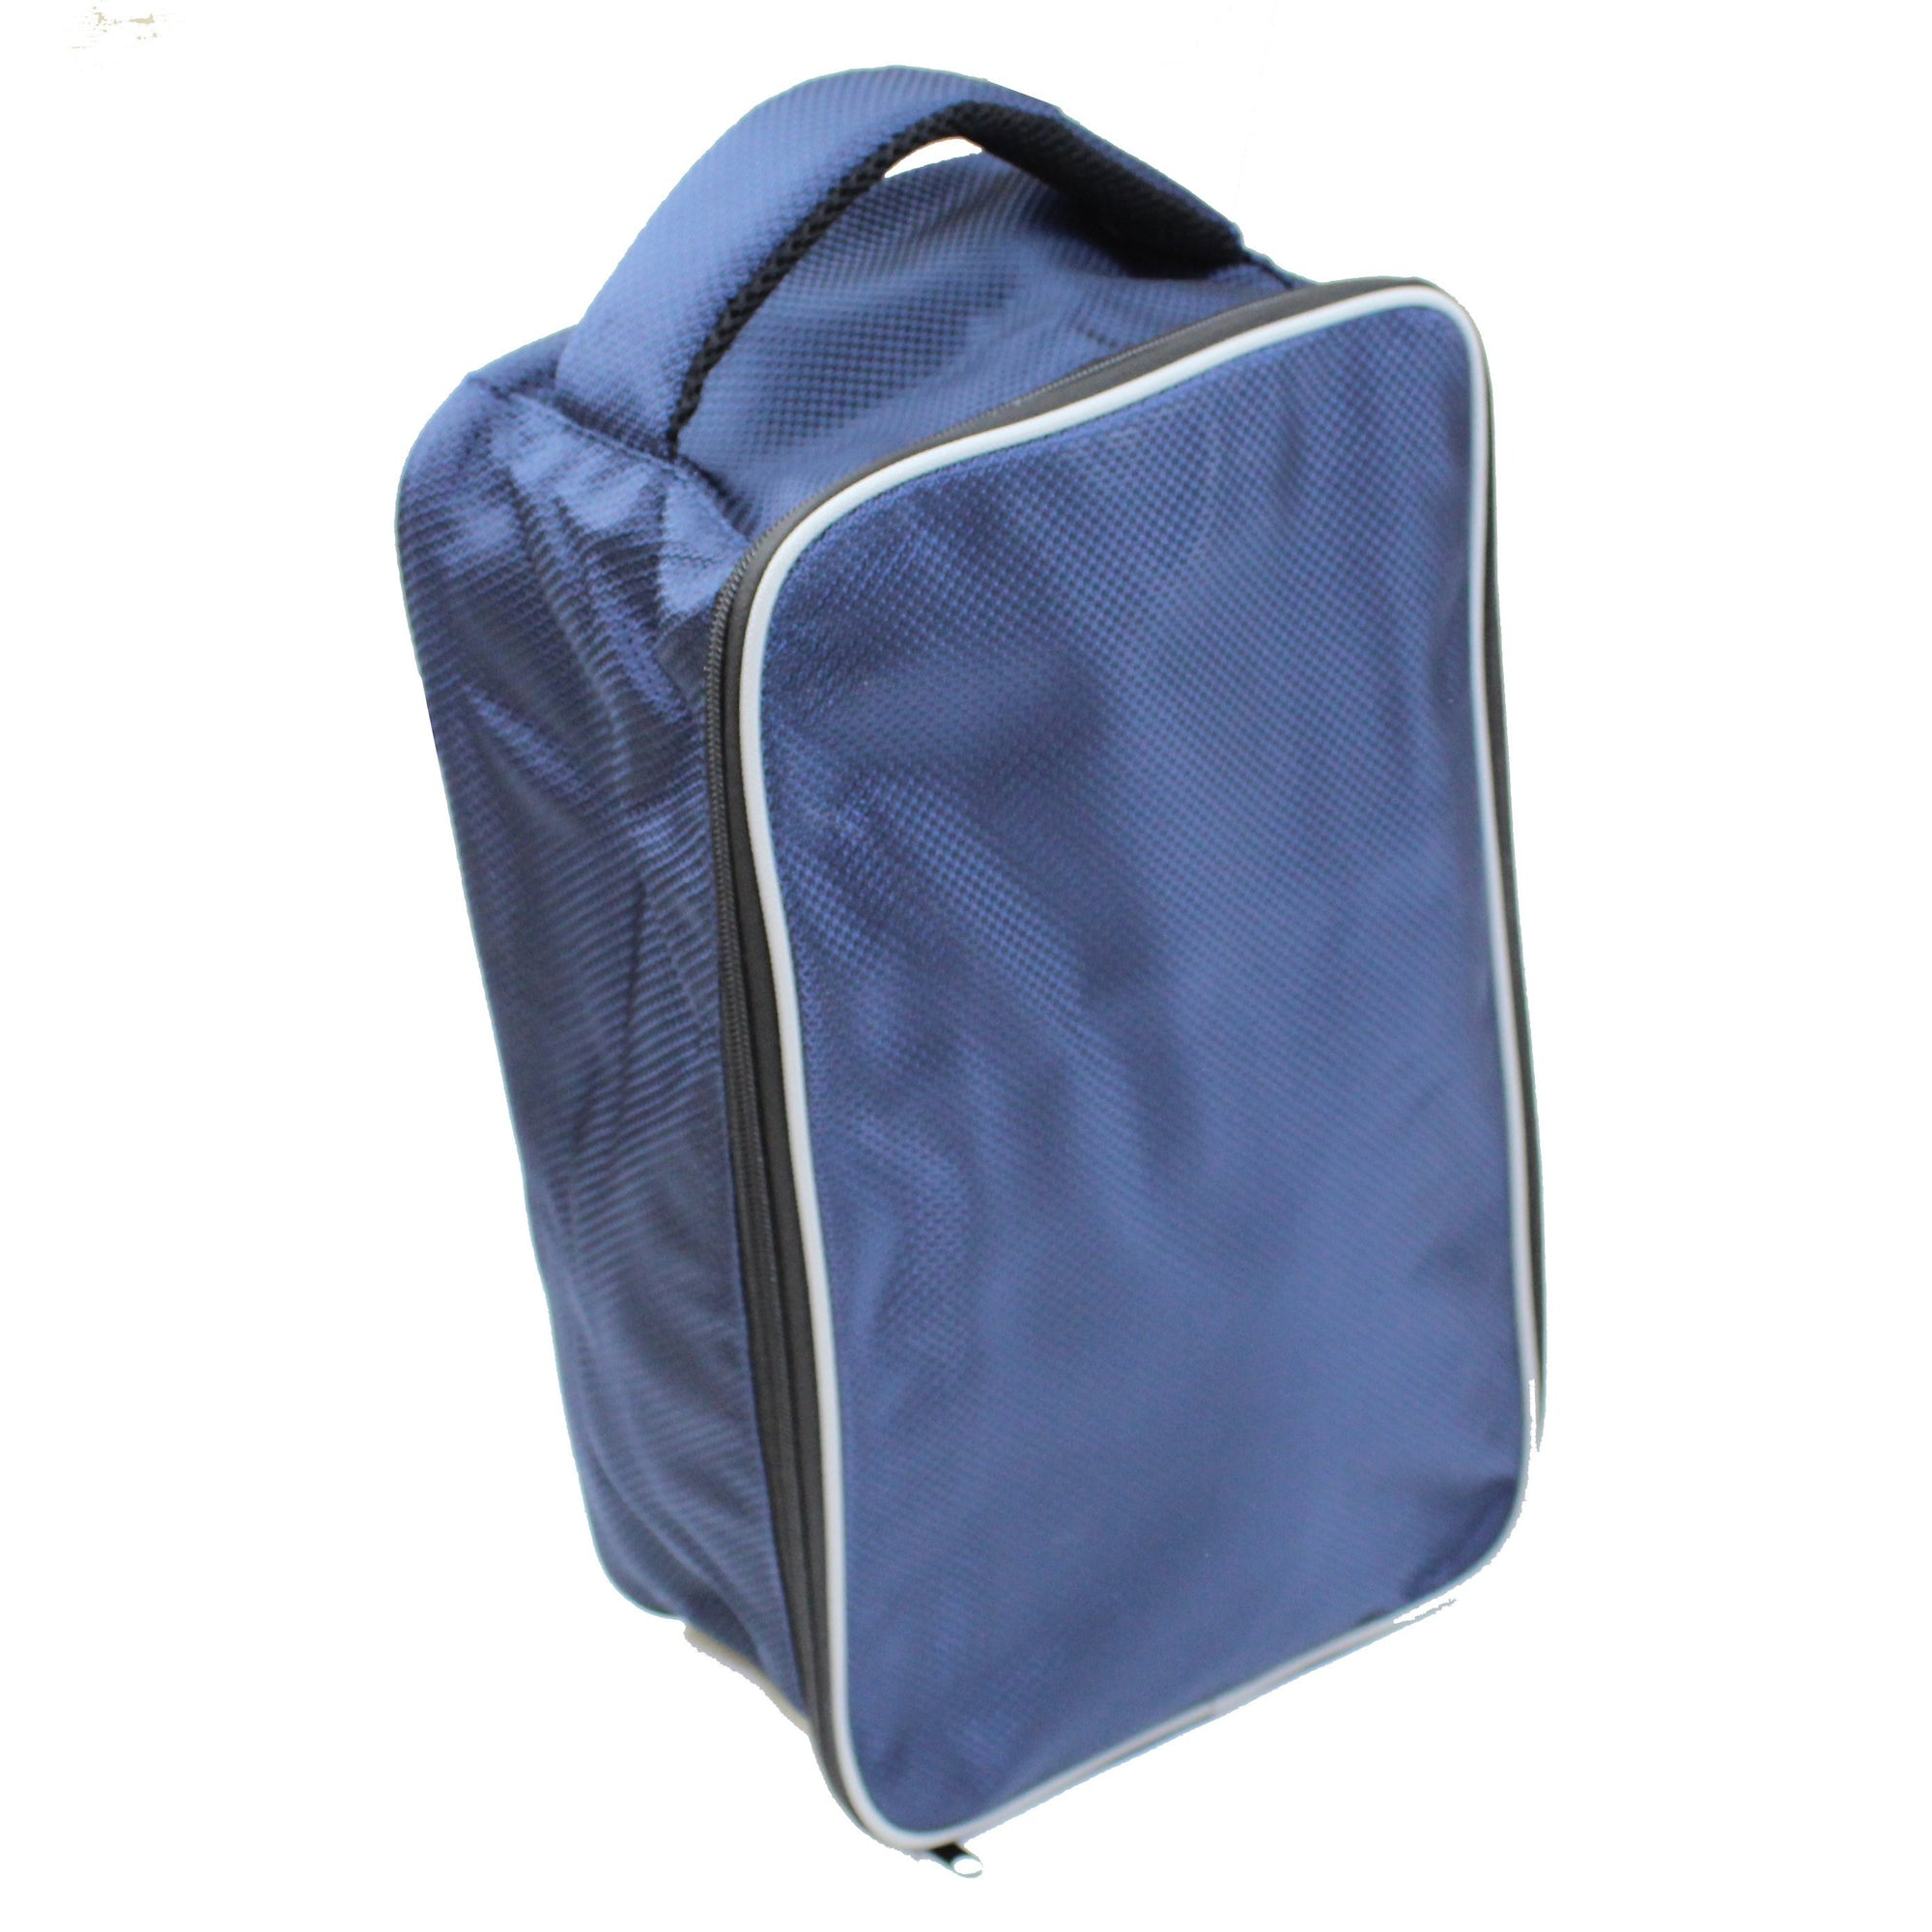 Druids Golf - Corporate Shoe Bag (Navy)